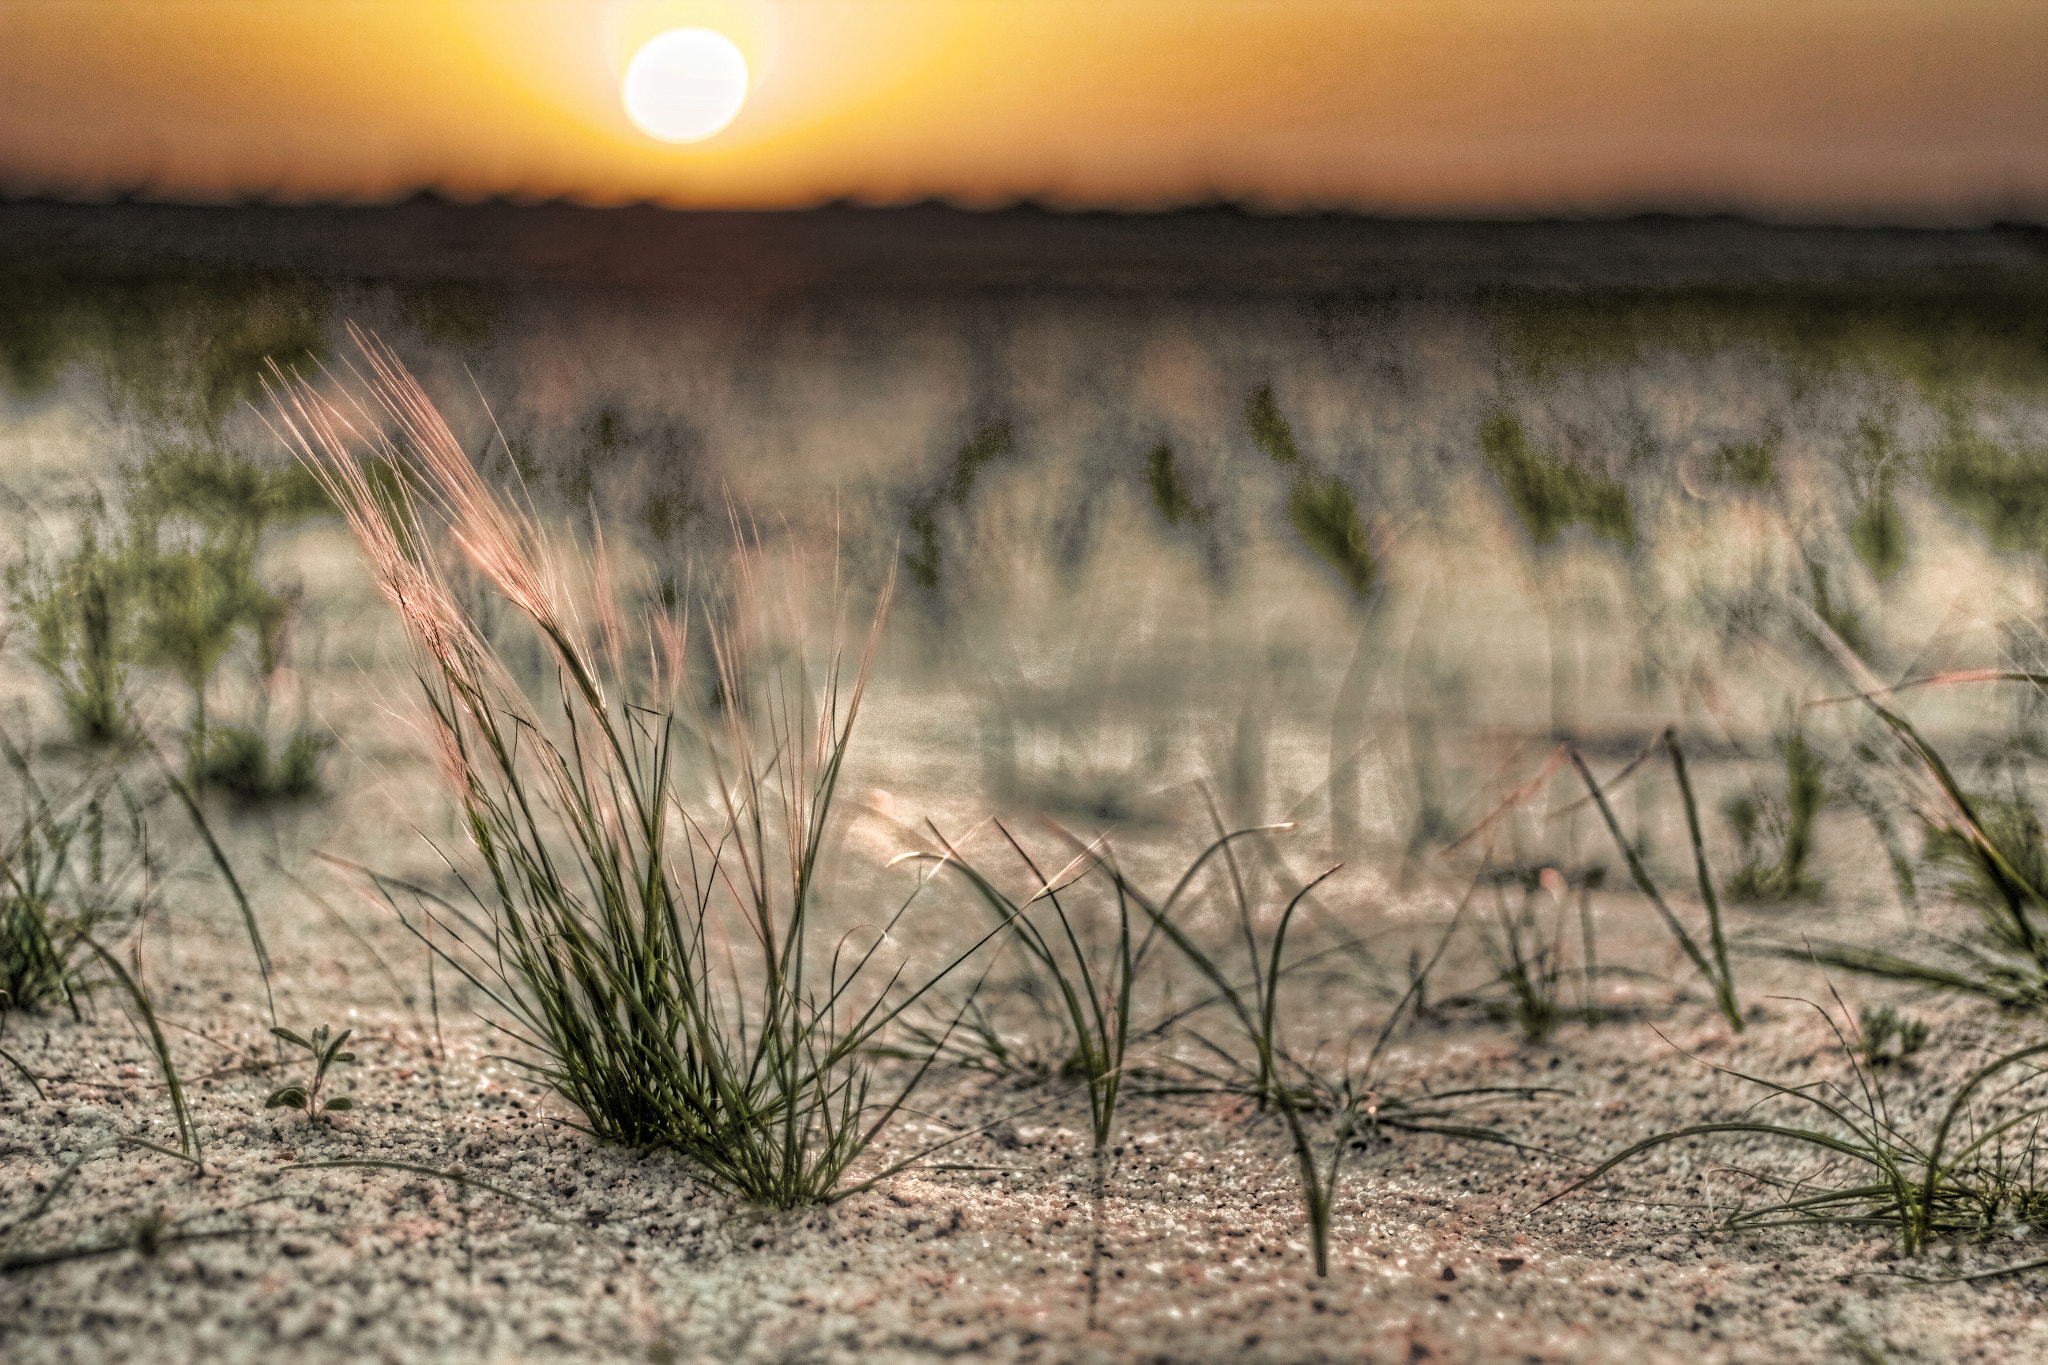 Photograph Life in the Desert by Nasser Al-Humaidi on 500px